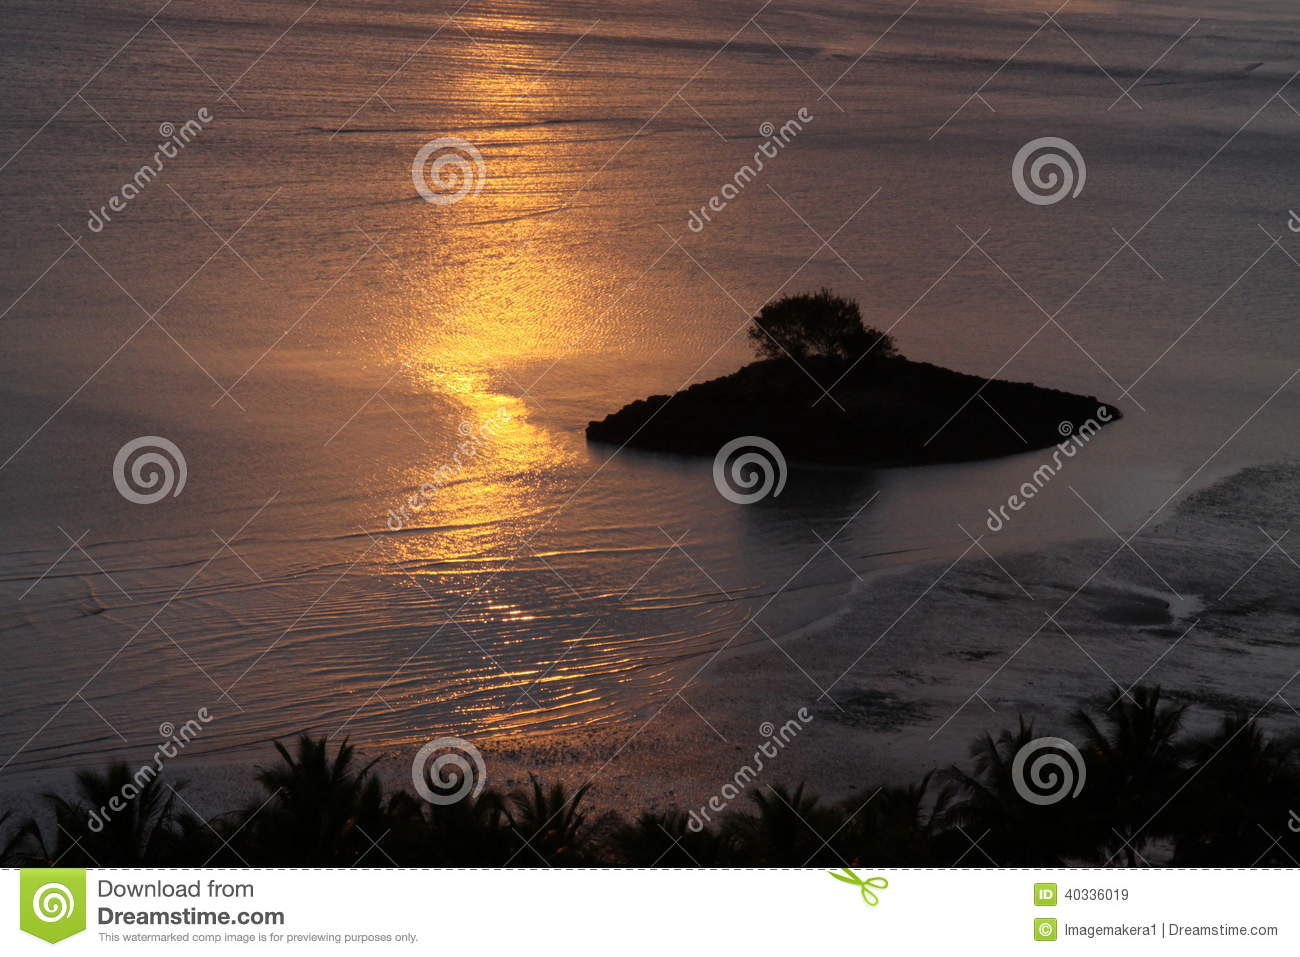 Sunrise reflections over a tropical island